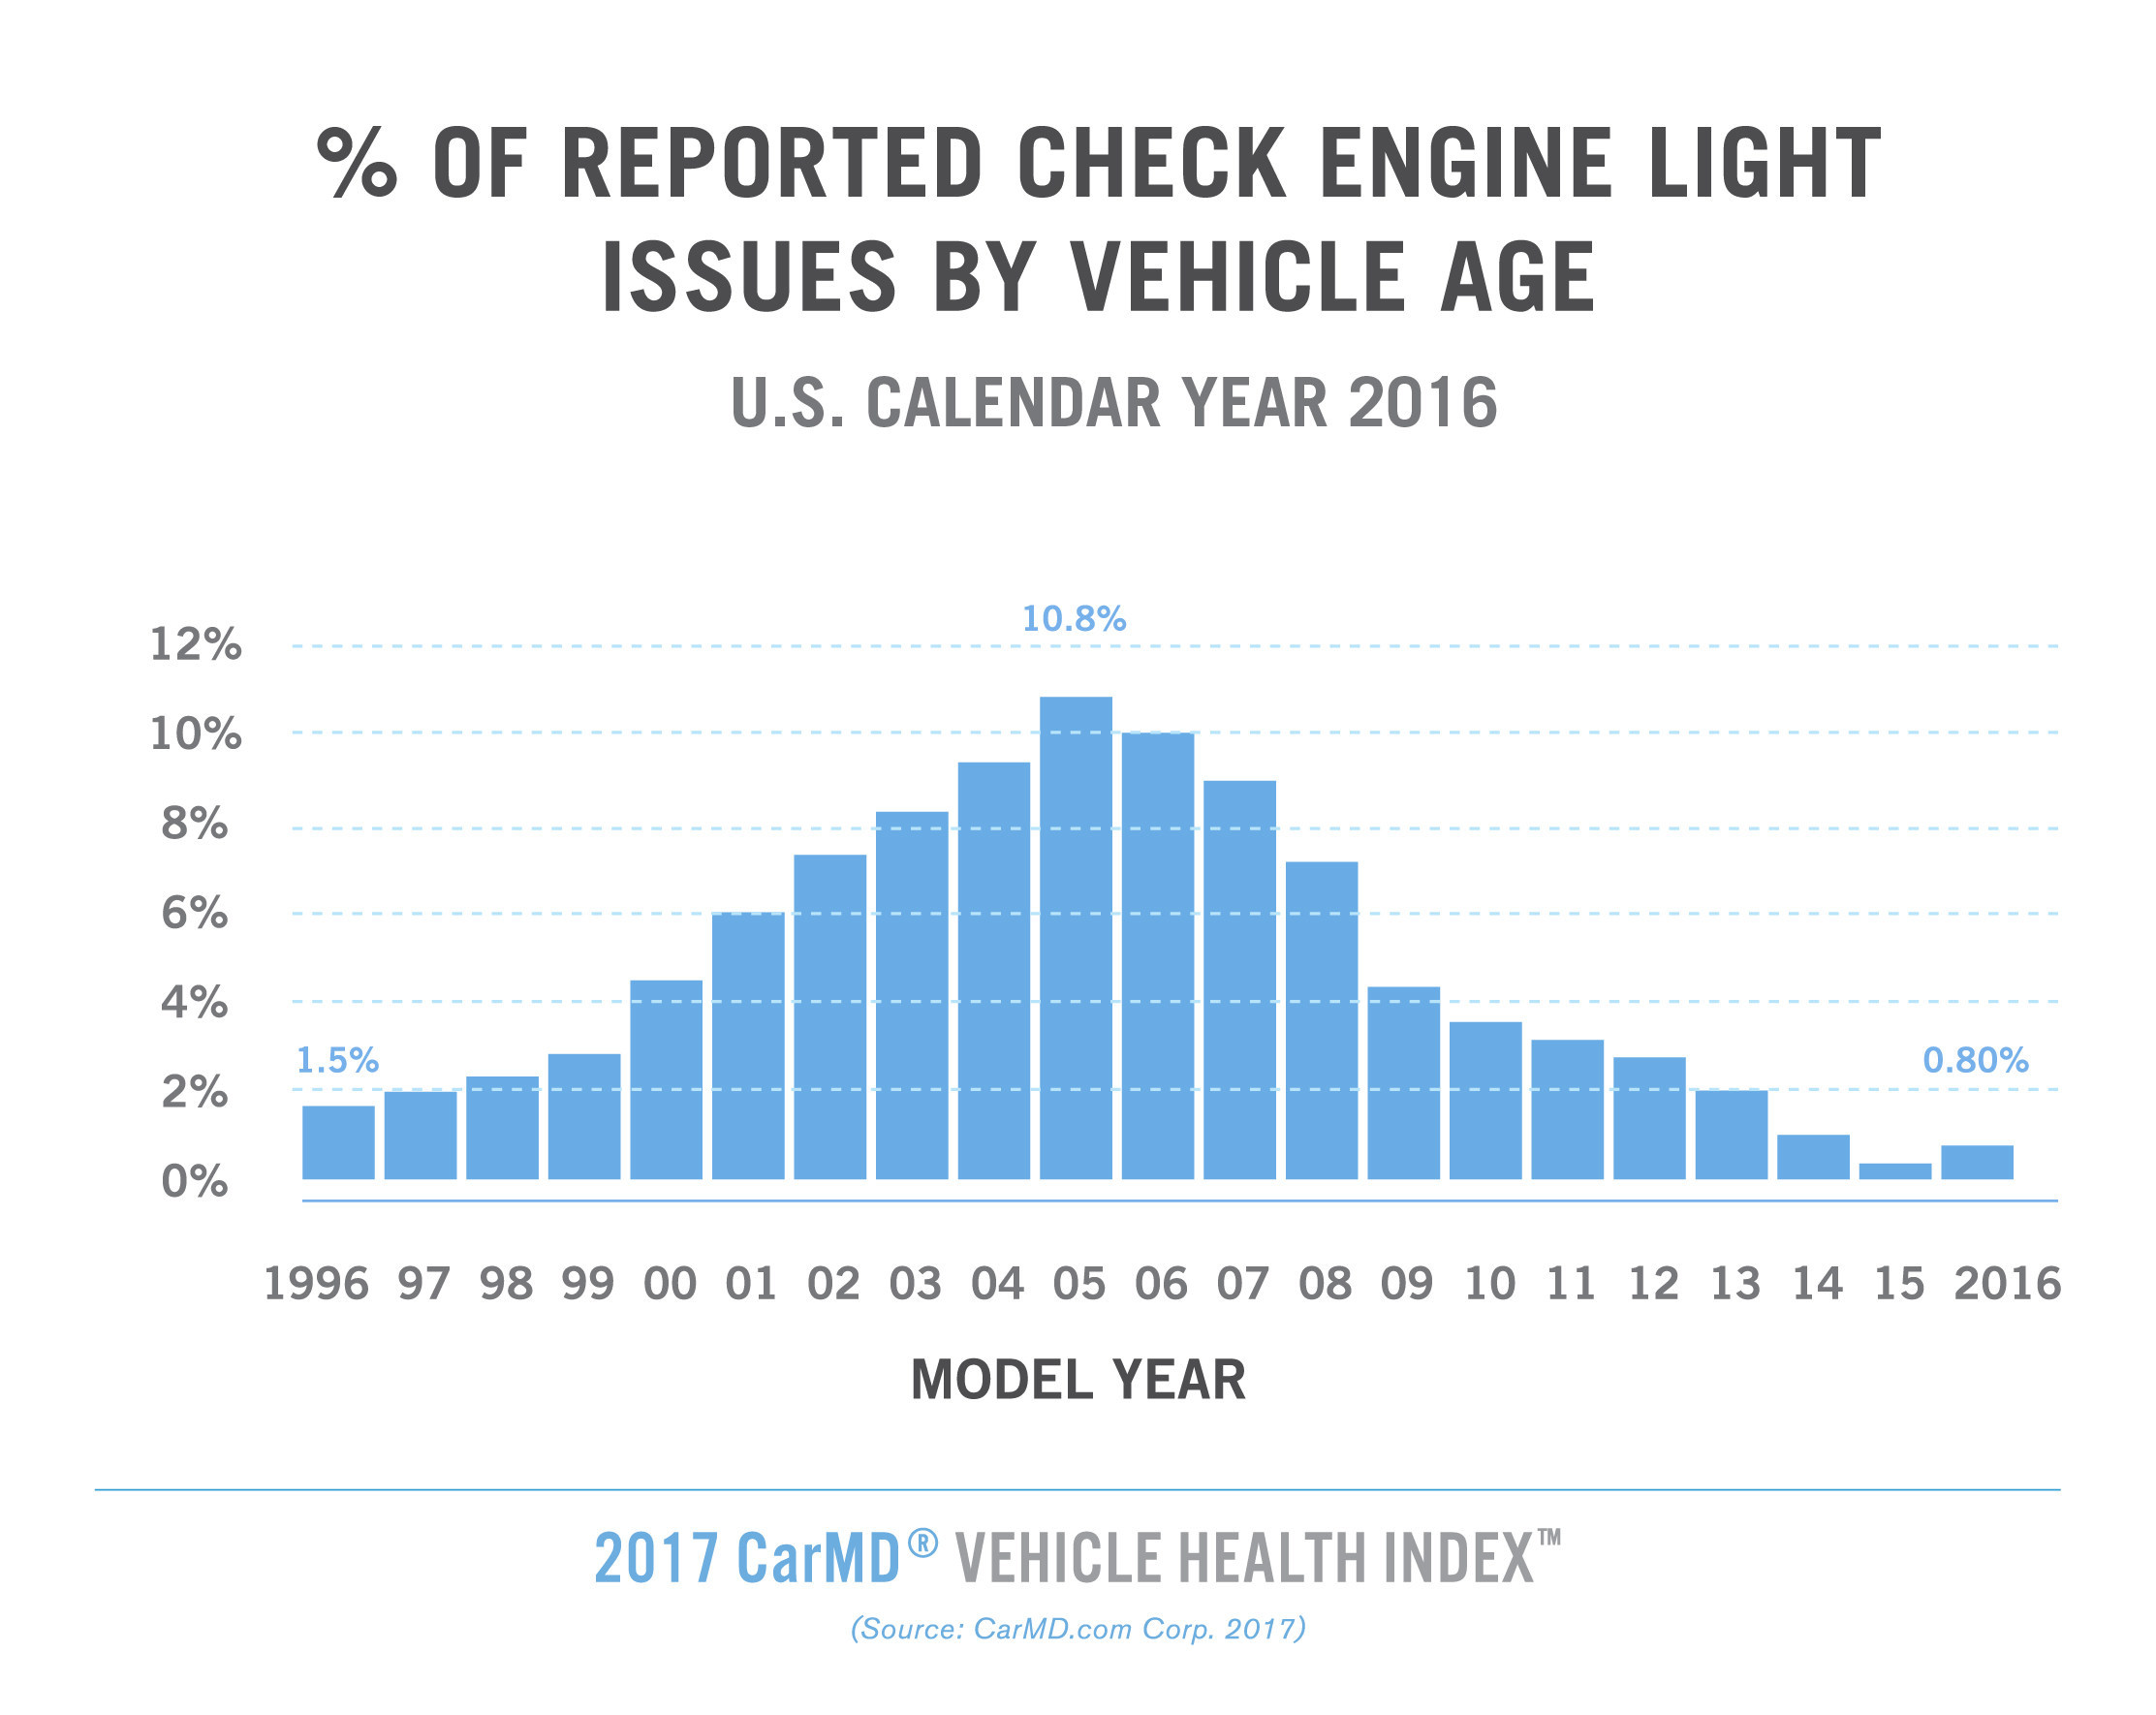 2017 CarMD® Vehicle Health Index™ reveals model year 2005 vehicles most likely to have had a check engine light-related problem in the past year, accounting for 10.8% of such problems reported to CarMD in 2016. Model year 2006 vehicles comprised 10% of reported check engine issues, followed by model year 2004 vehicles (9.5%) and 2007 vehicles (9%). See full report at https://www.carmd.com/wp/vehicle-health-index-introduction/2017-carmd-vehicle-health-index/